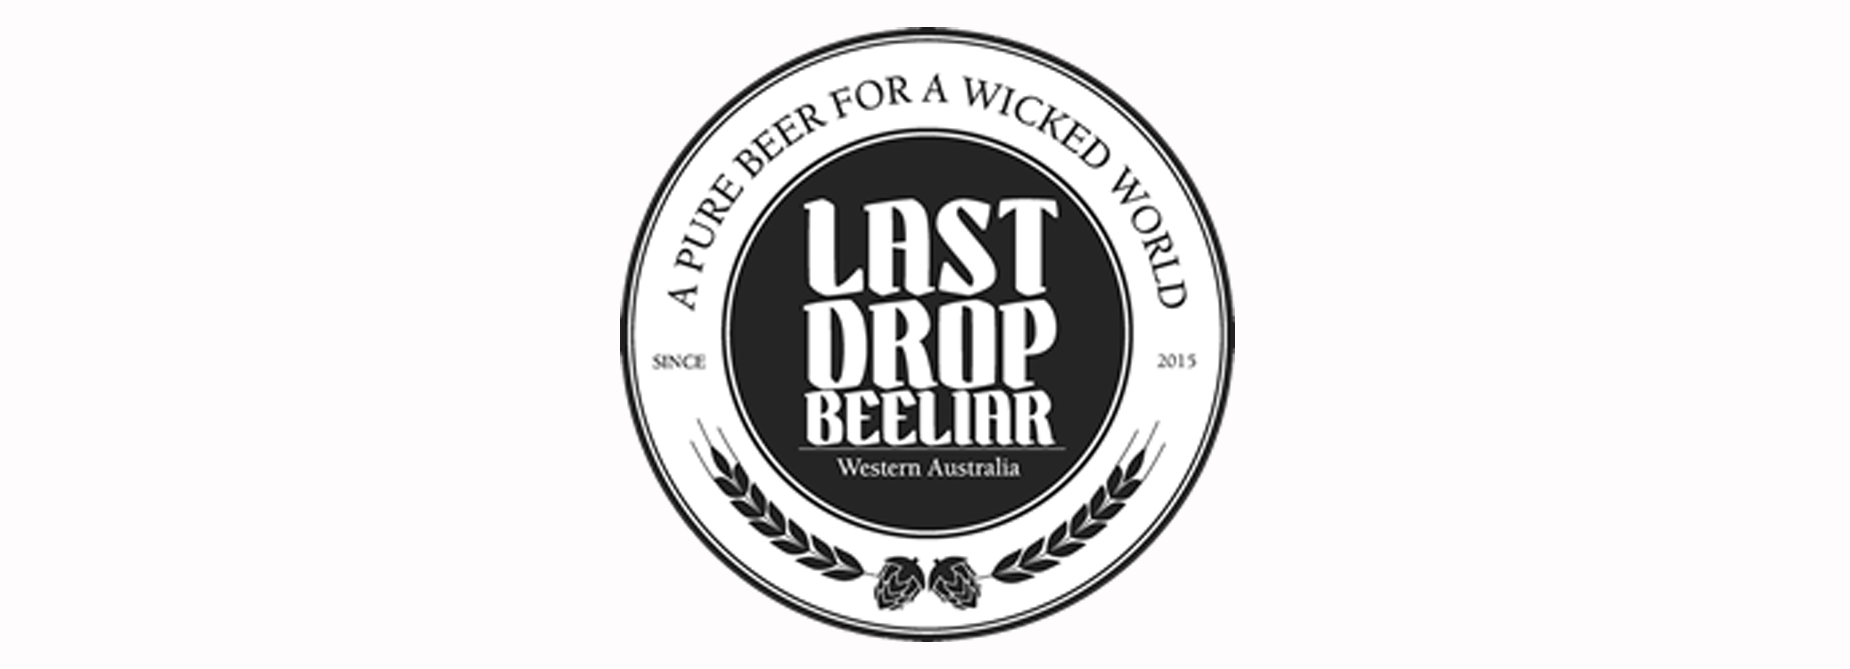 The Last Drop Beelair Logo